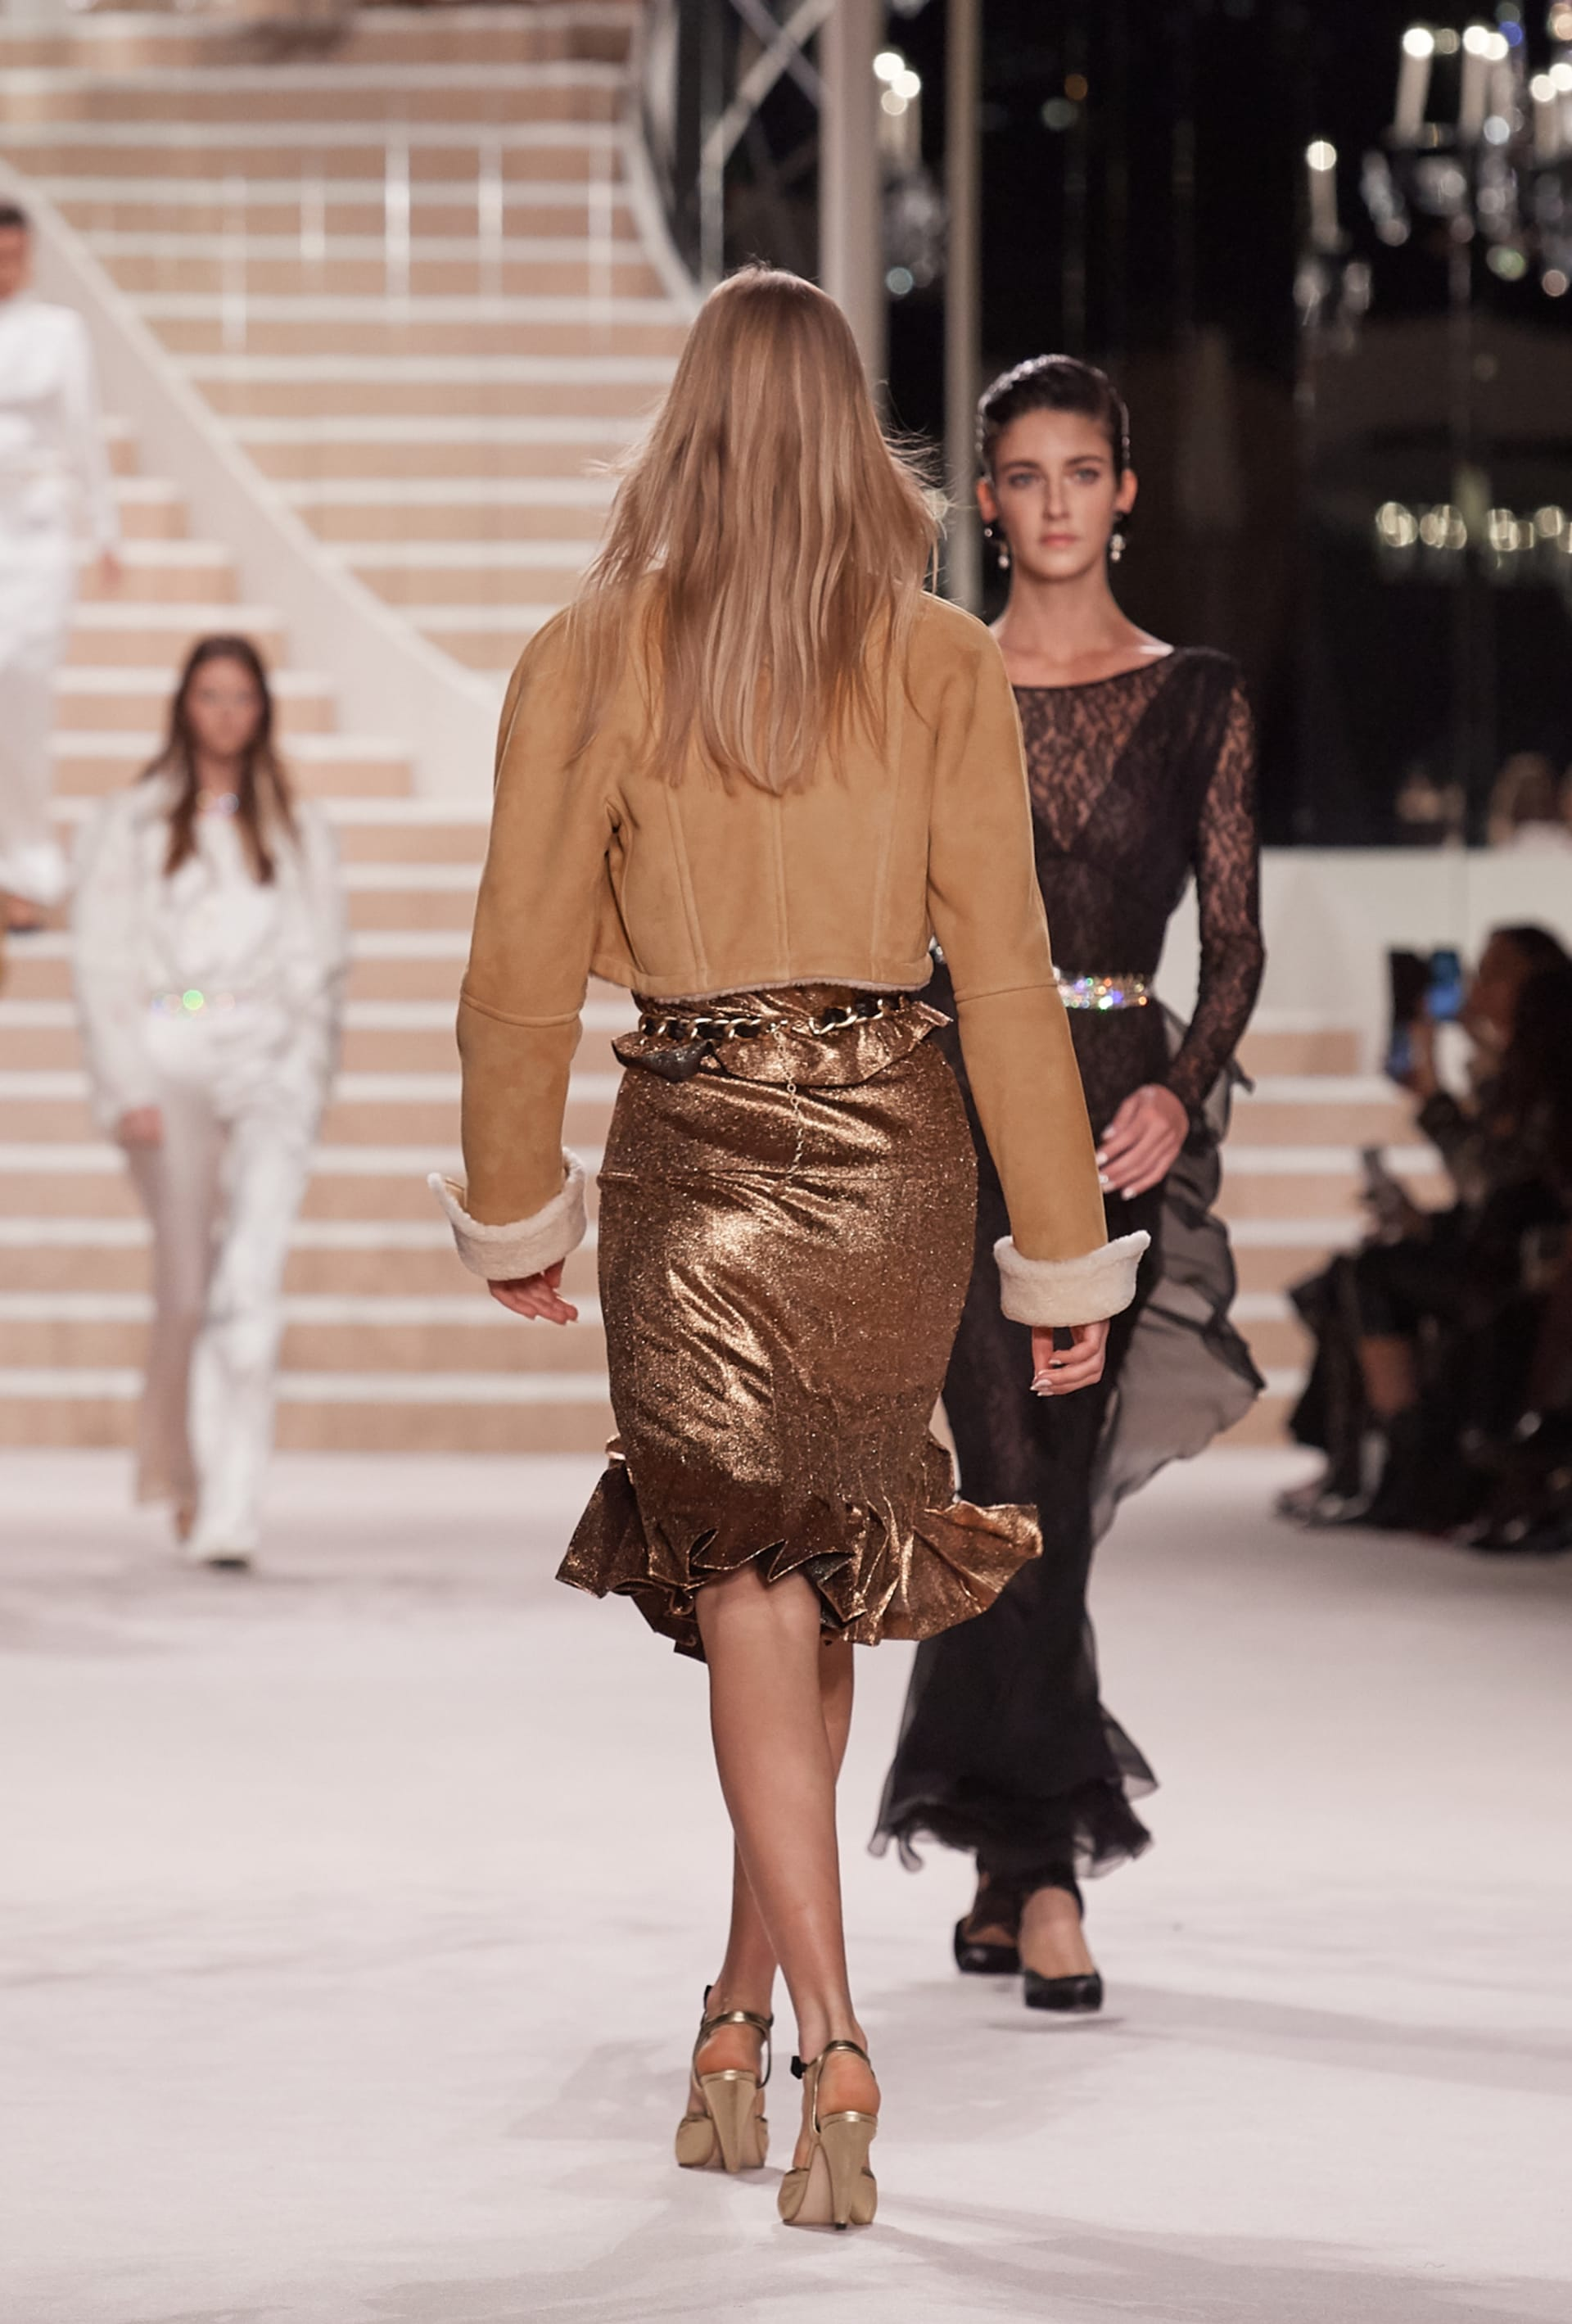 View 4 - Look 50 - Métiers d'Art 2019/20 - see full sized version